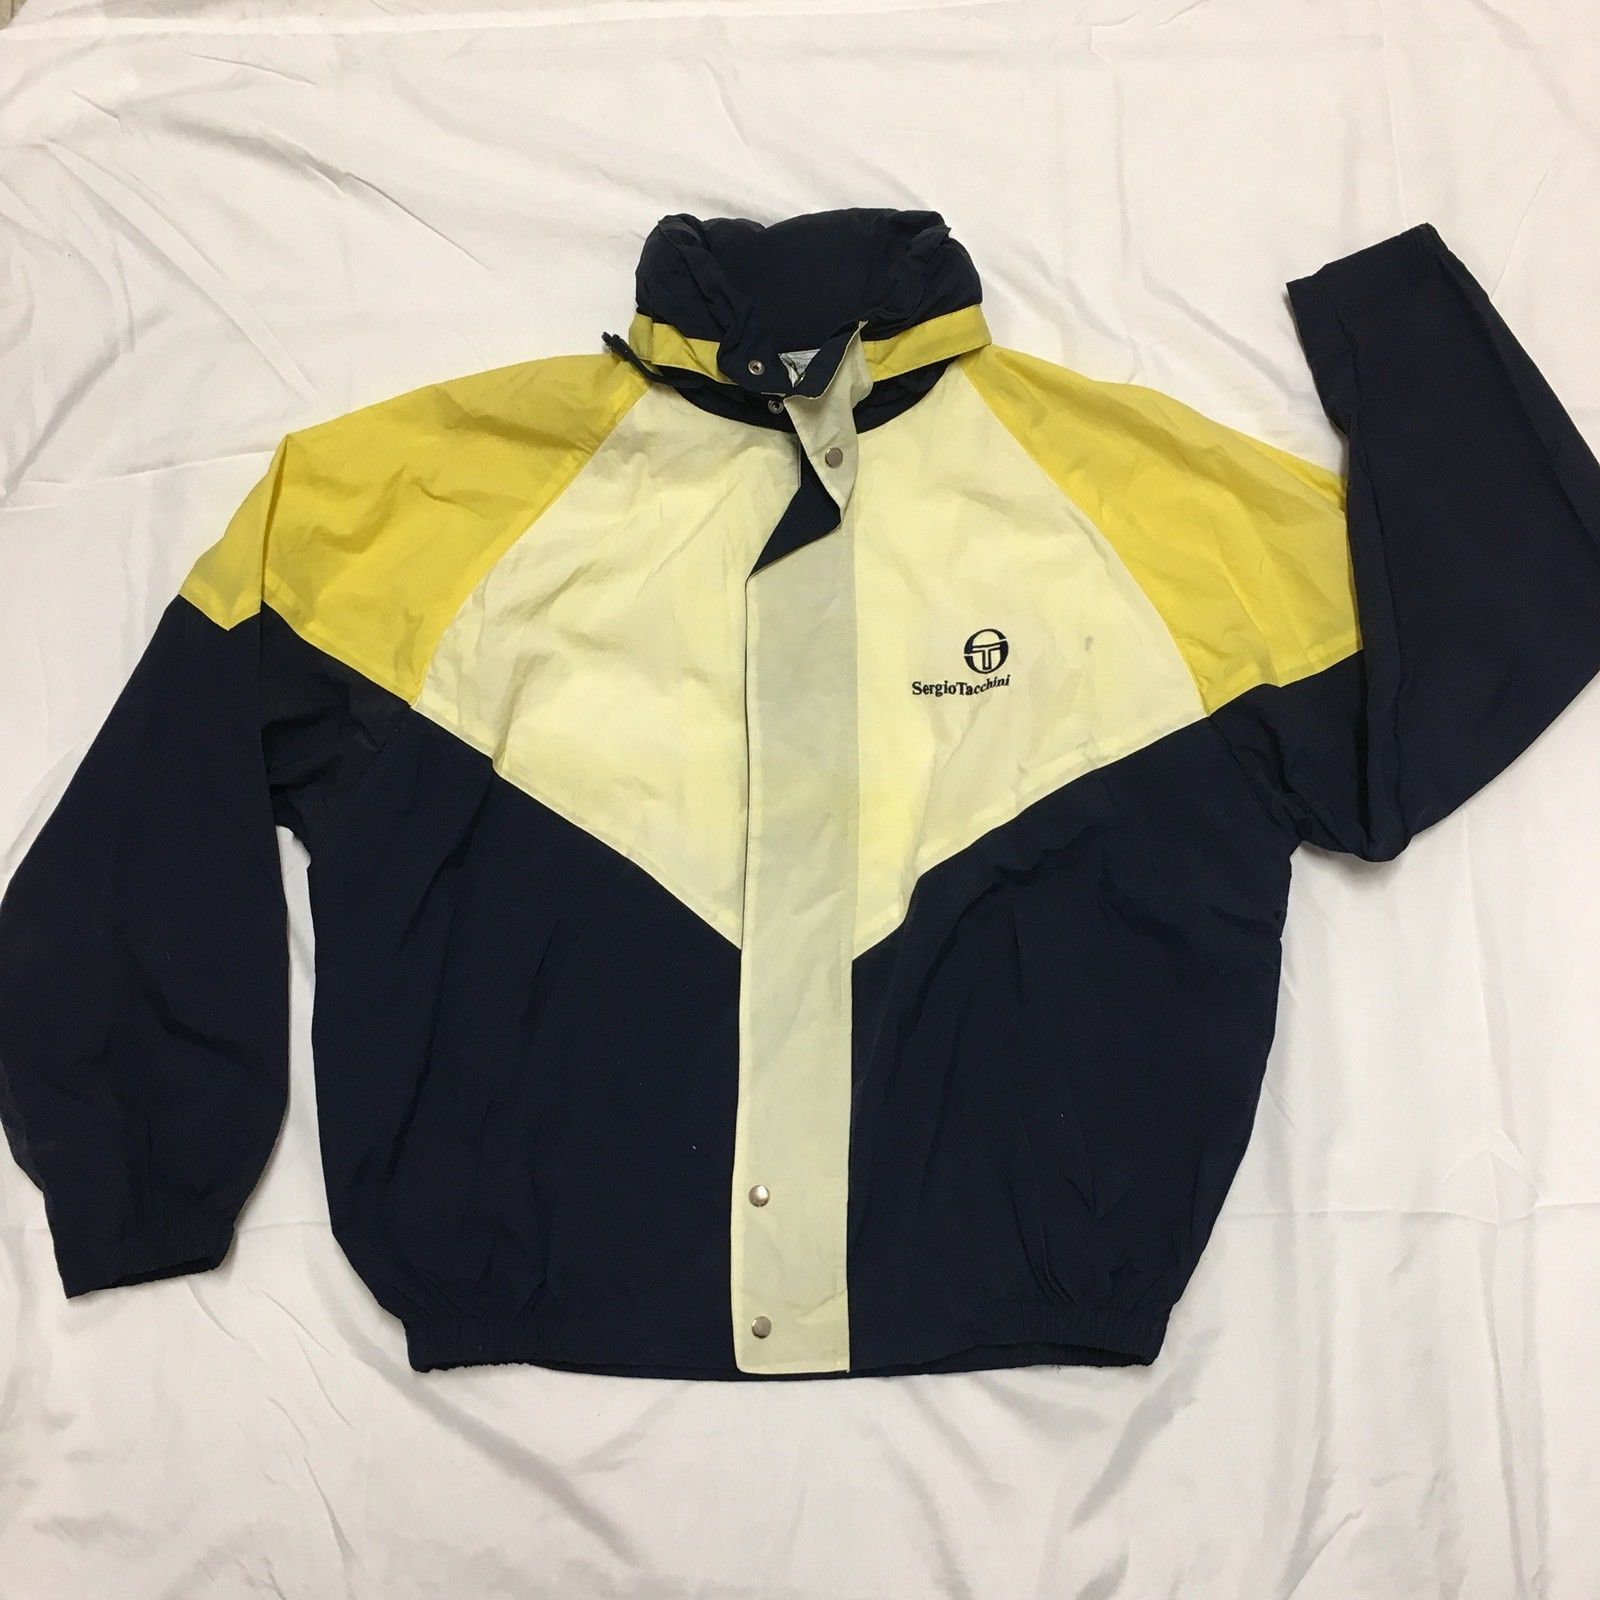 Vintage Sergio Tacchini Windbreaker Jacket 80s 90s Yellow